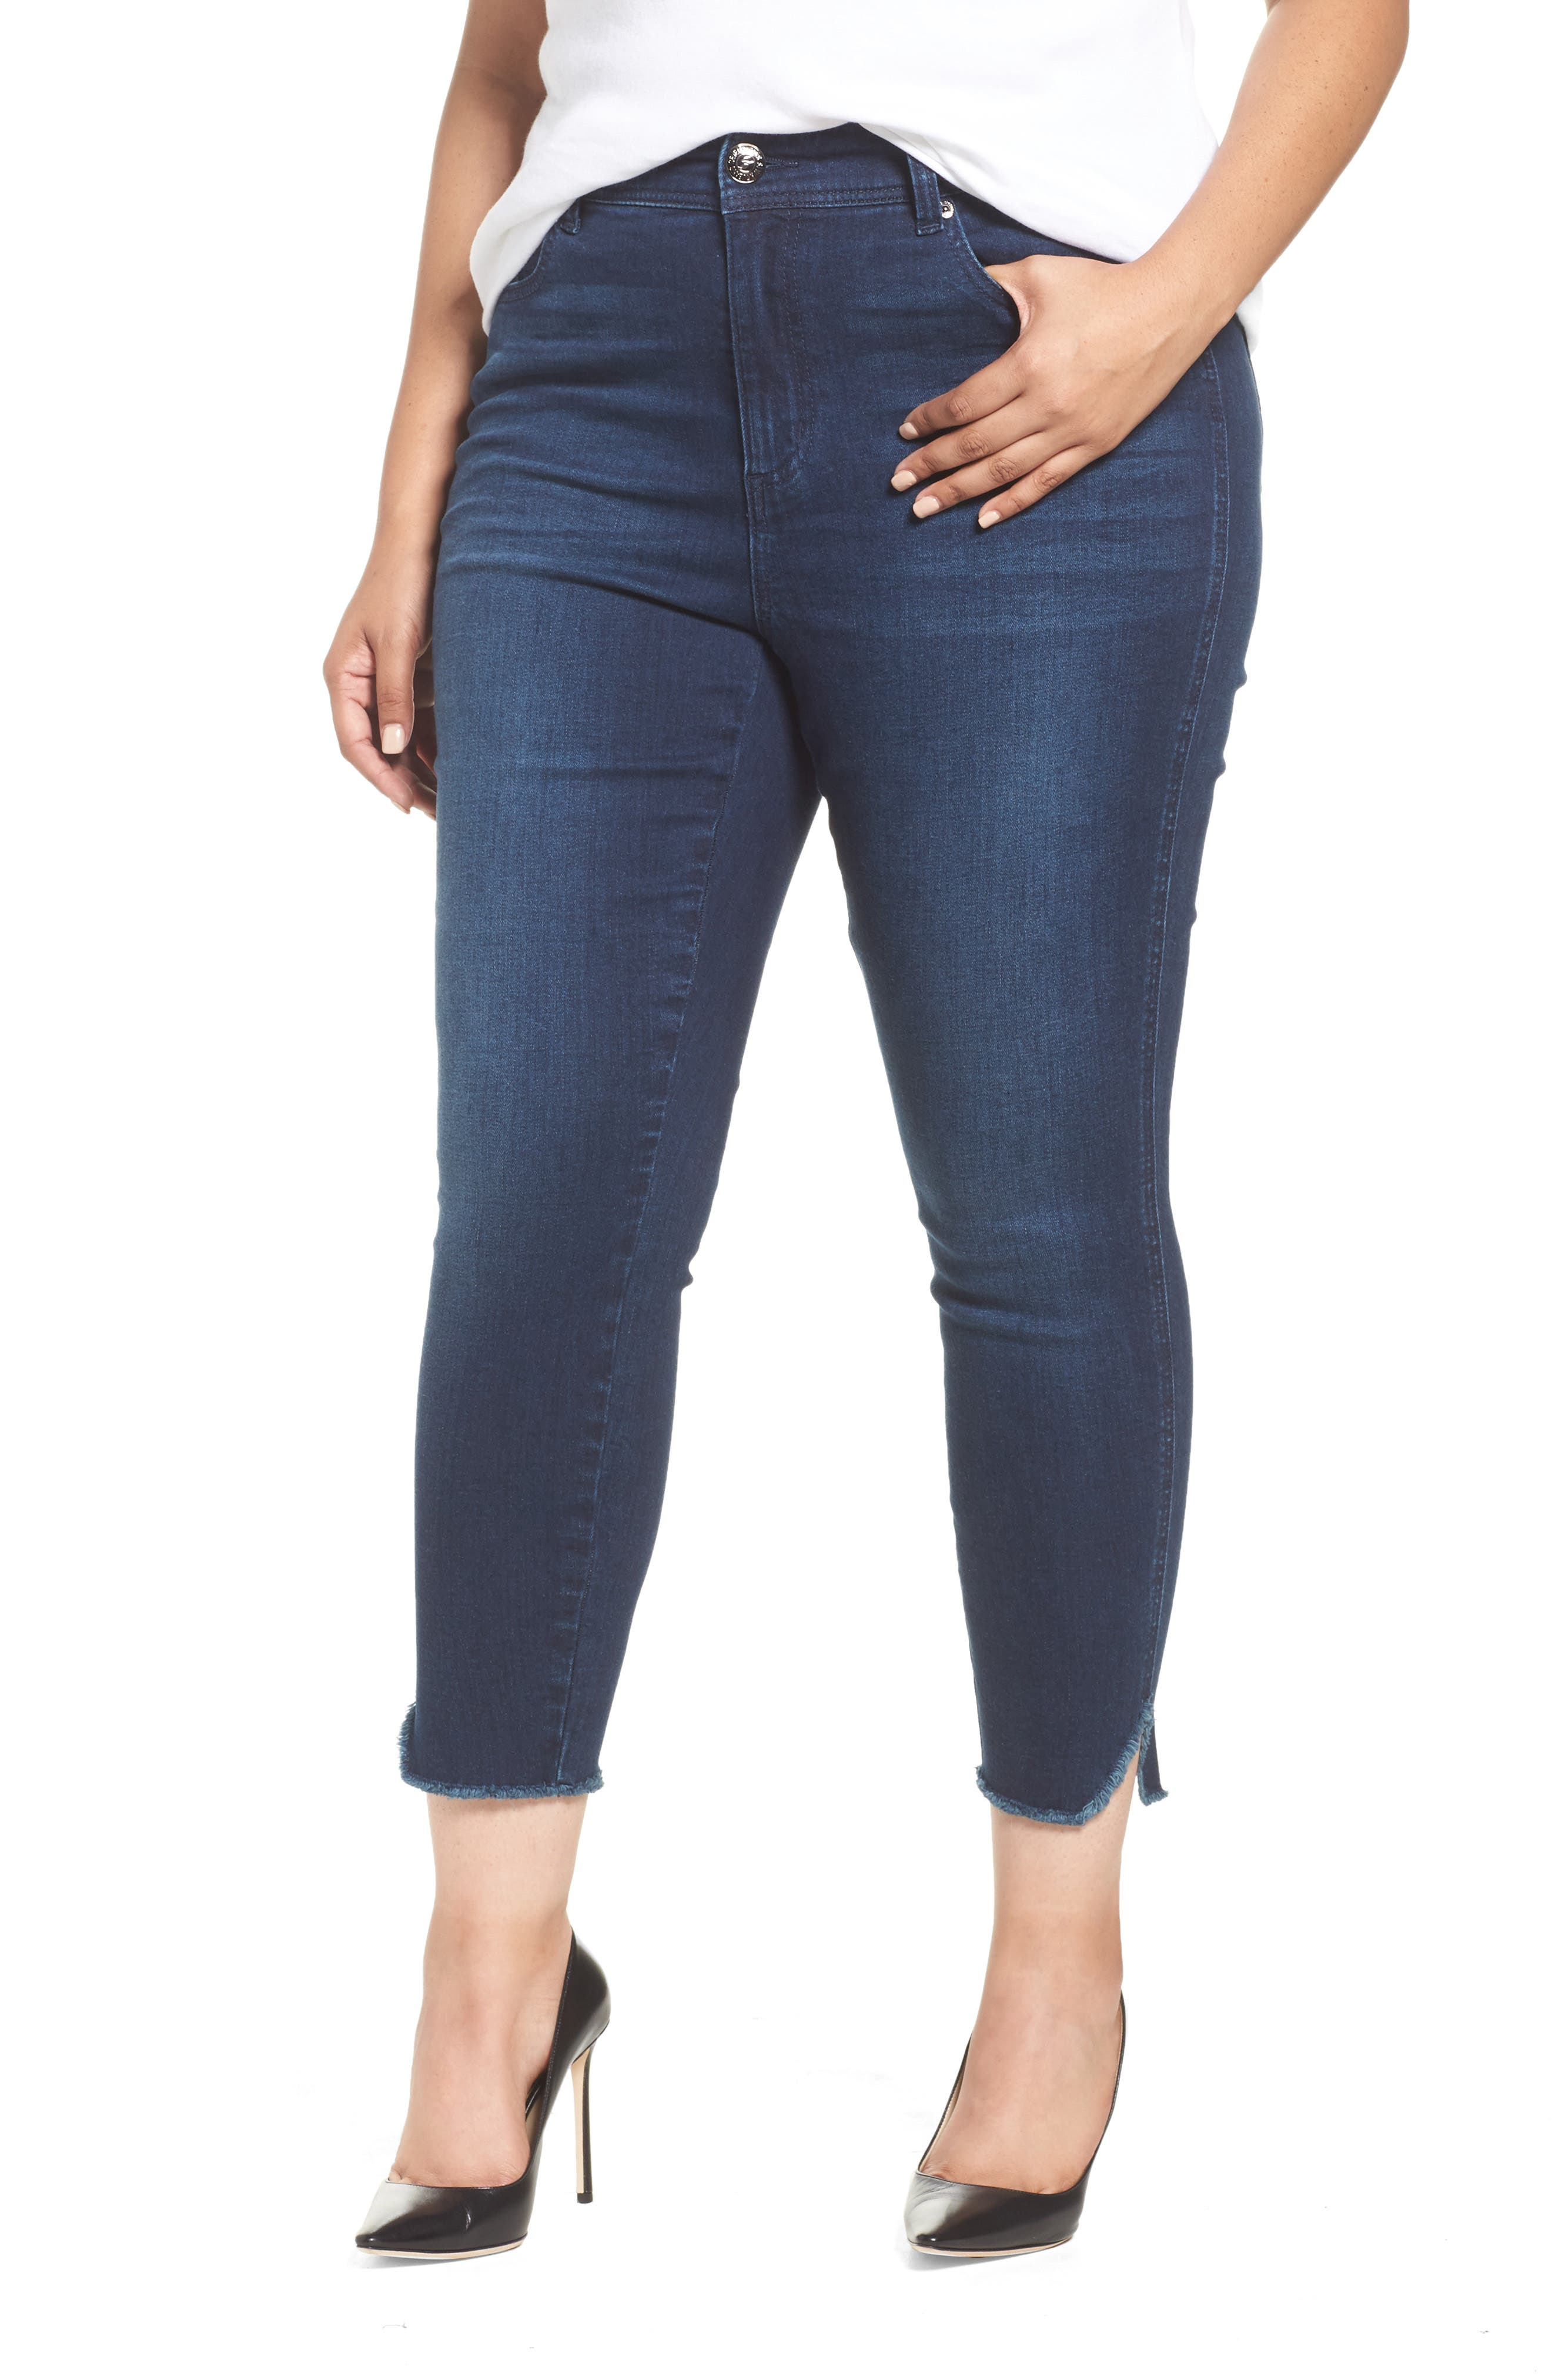 Alternate Image 1 Selected - Seven7 High Waist Ankle Skinny Jeans (Plus Size)